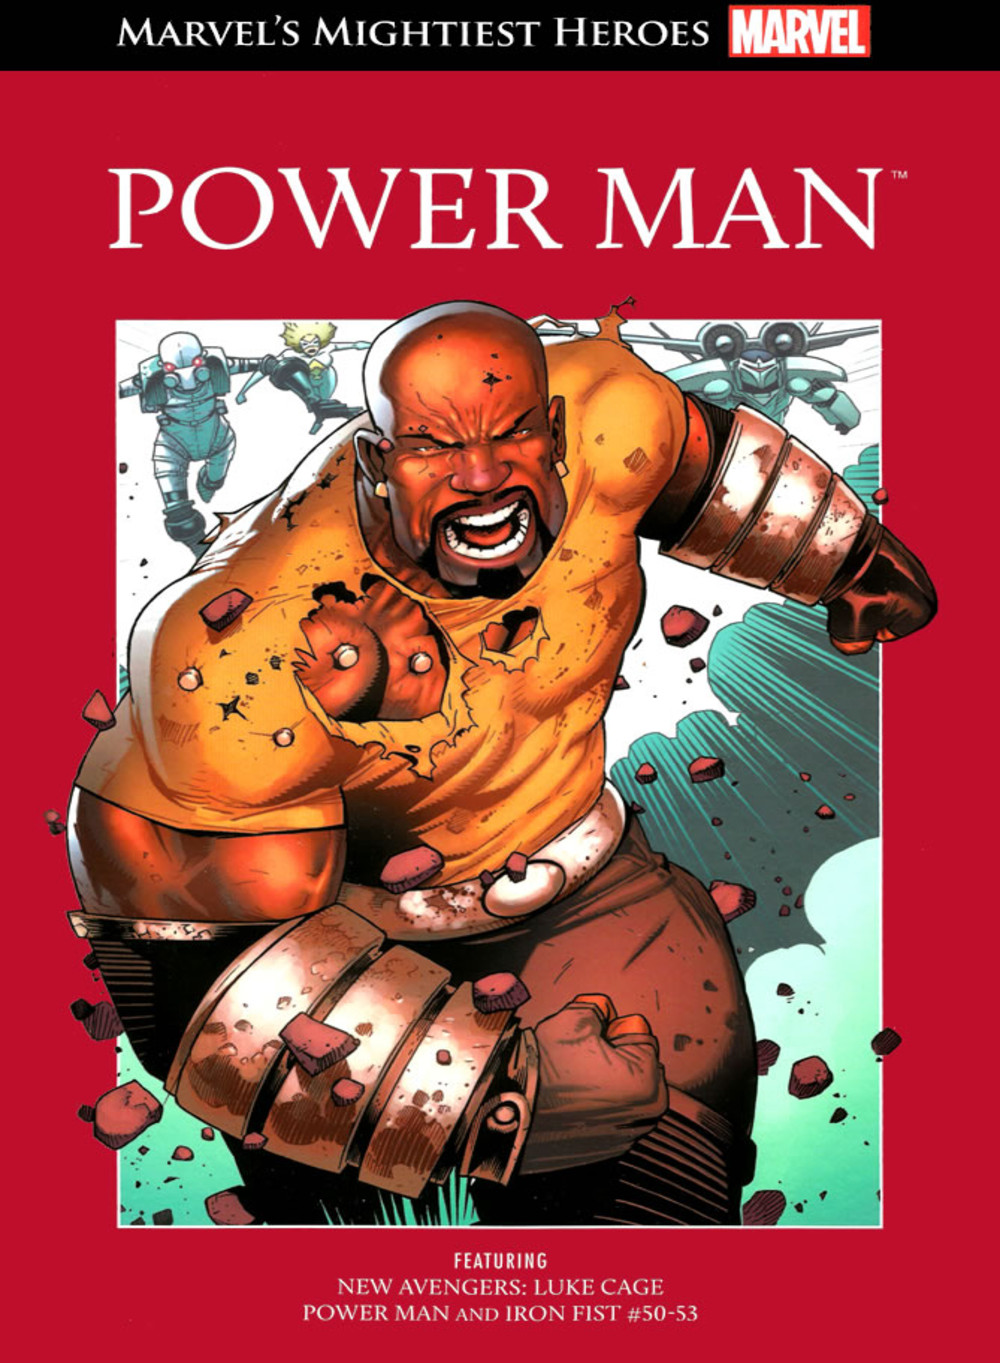 Le Meilleur des super-héros Marvel 14 : Luke Cage - Traduction : Benjamin Viette